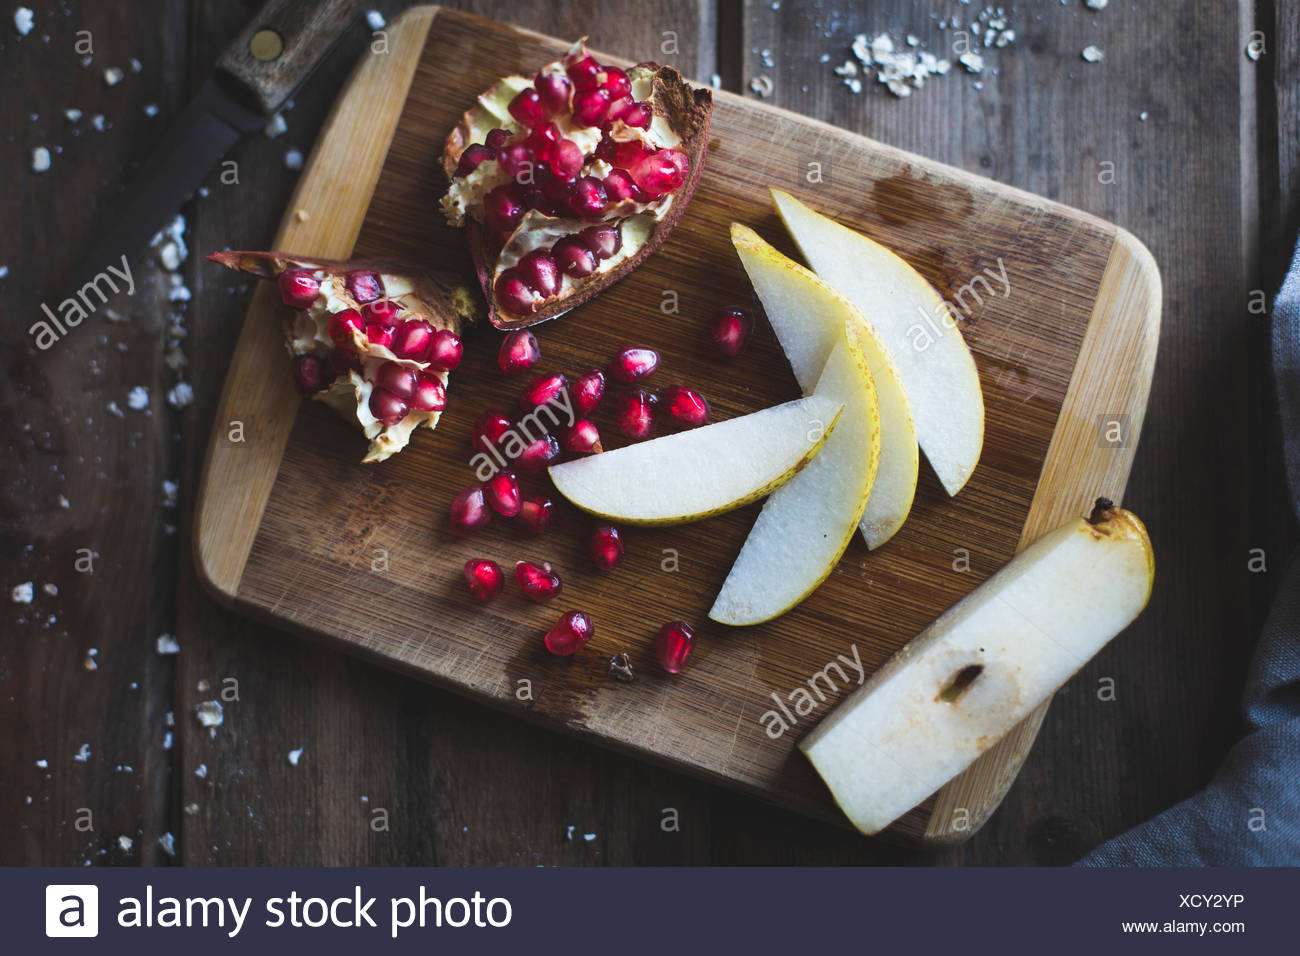 Pomegranate and Pear on a chopping board - Stock Image